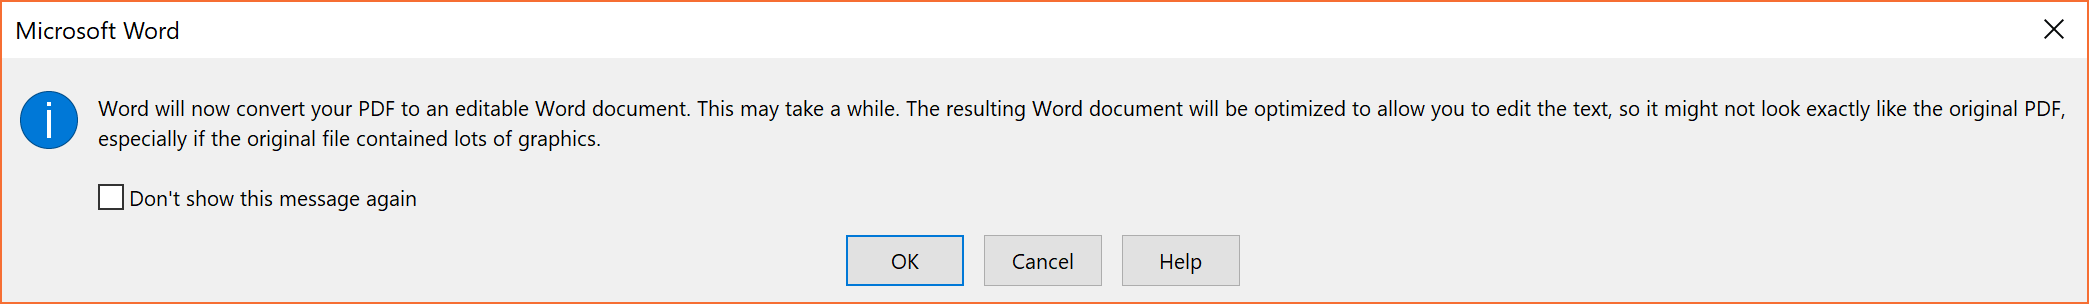 How to open PDF files in Microsoft Word - Quora